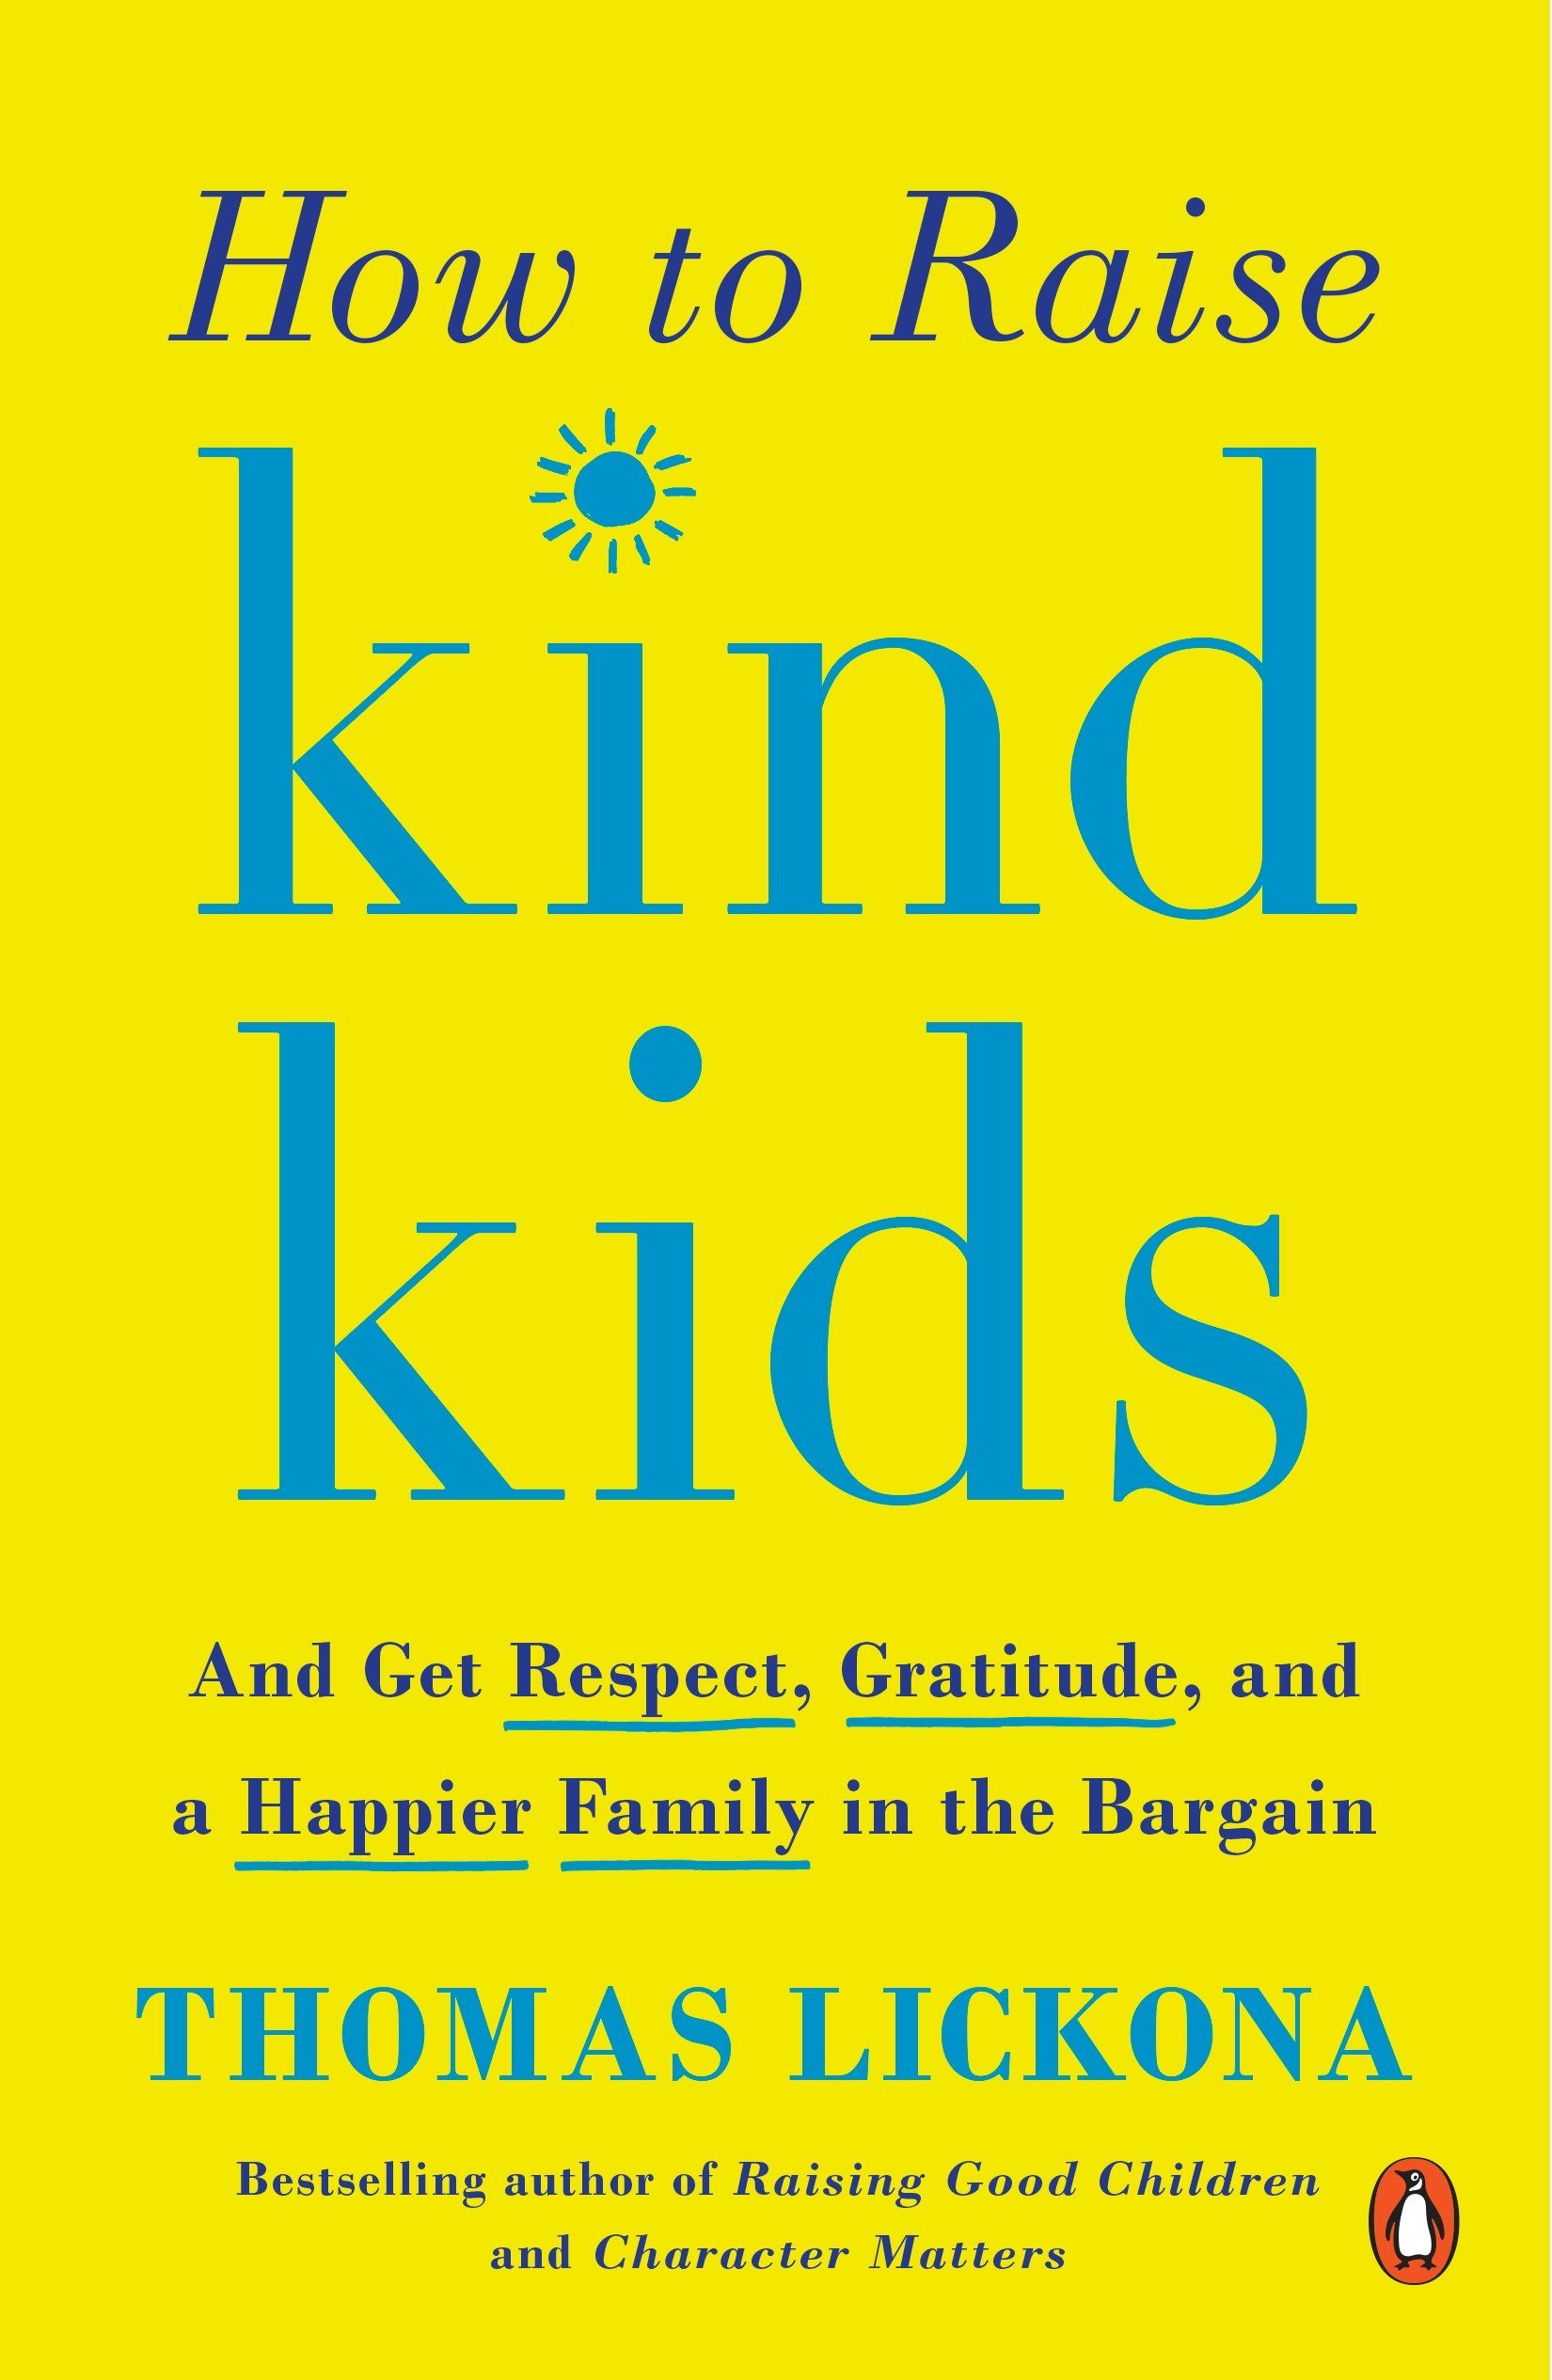 How to Raise Kind Kids: And Get Respect, Gratitude, and a Happier Family in the Bargain Paperback – April 10, 2018 Thomas Lickona Penguin Books 014313194X Movements - Behaviorism